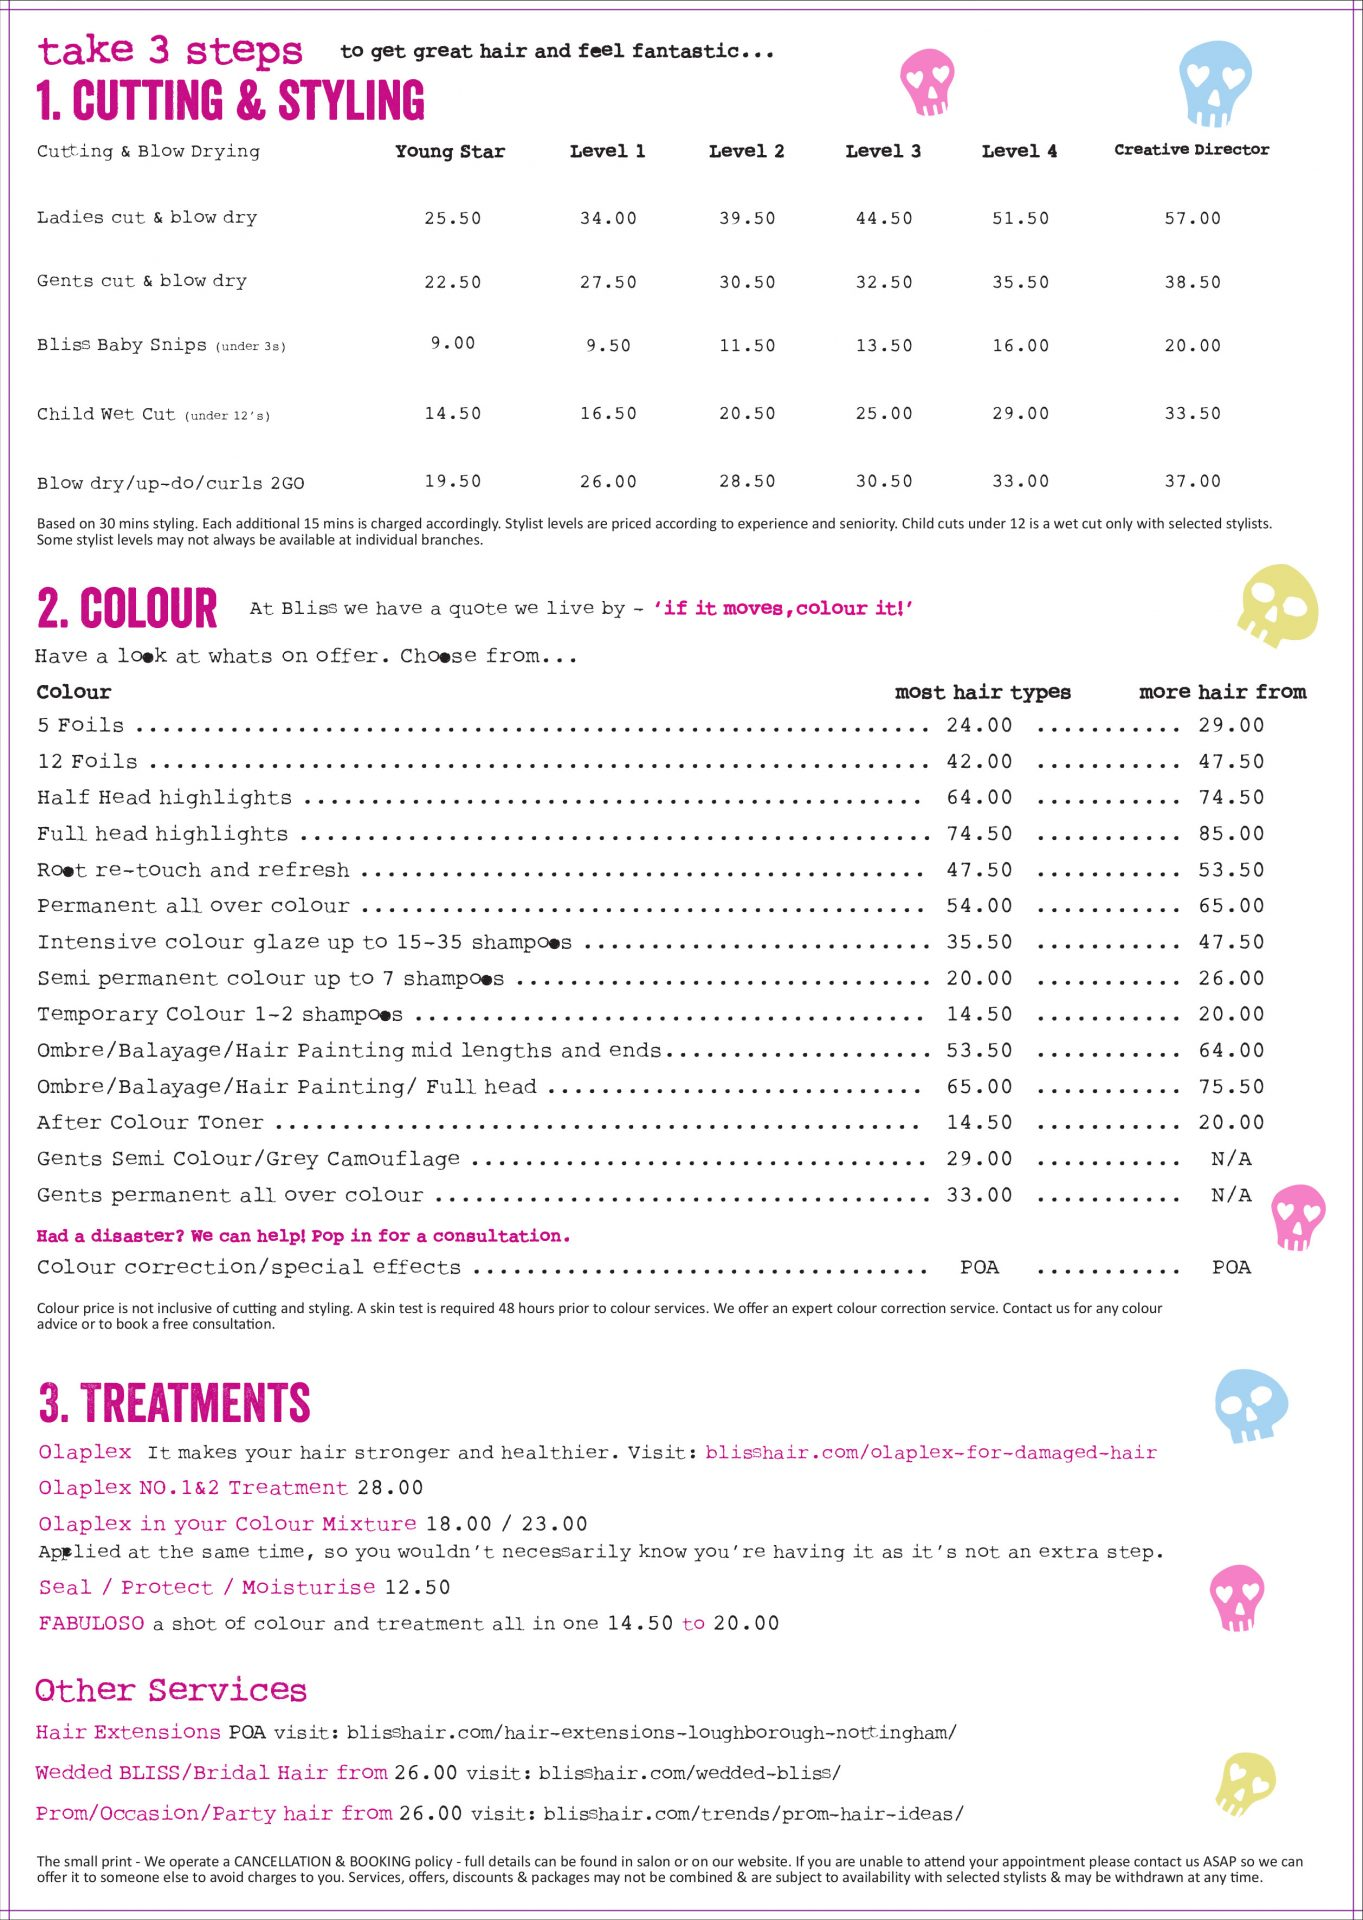 Price List For services at Bliss Hair Salons in Nottingham & Loughborough